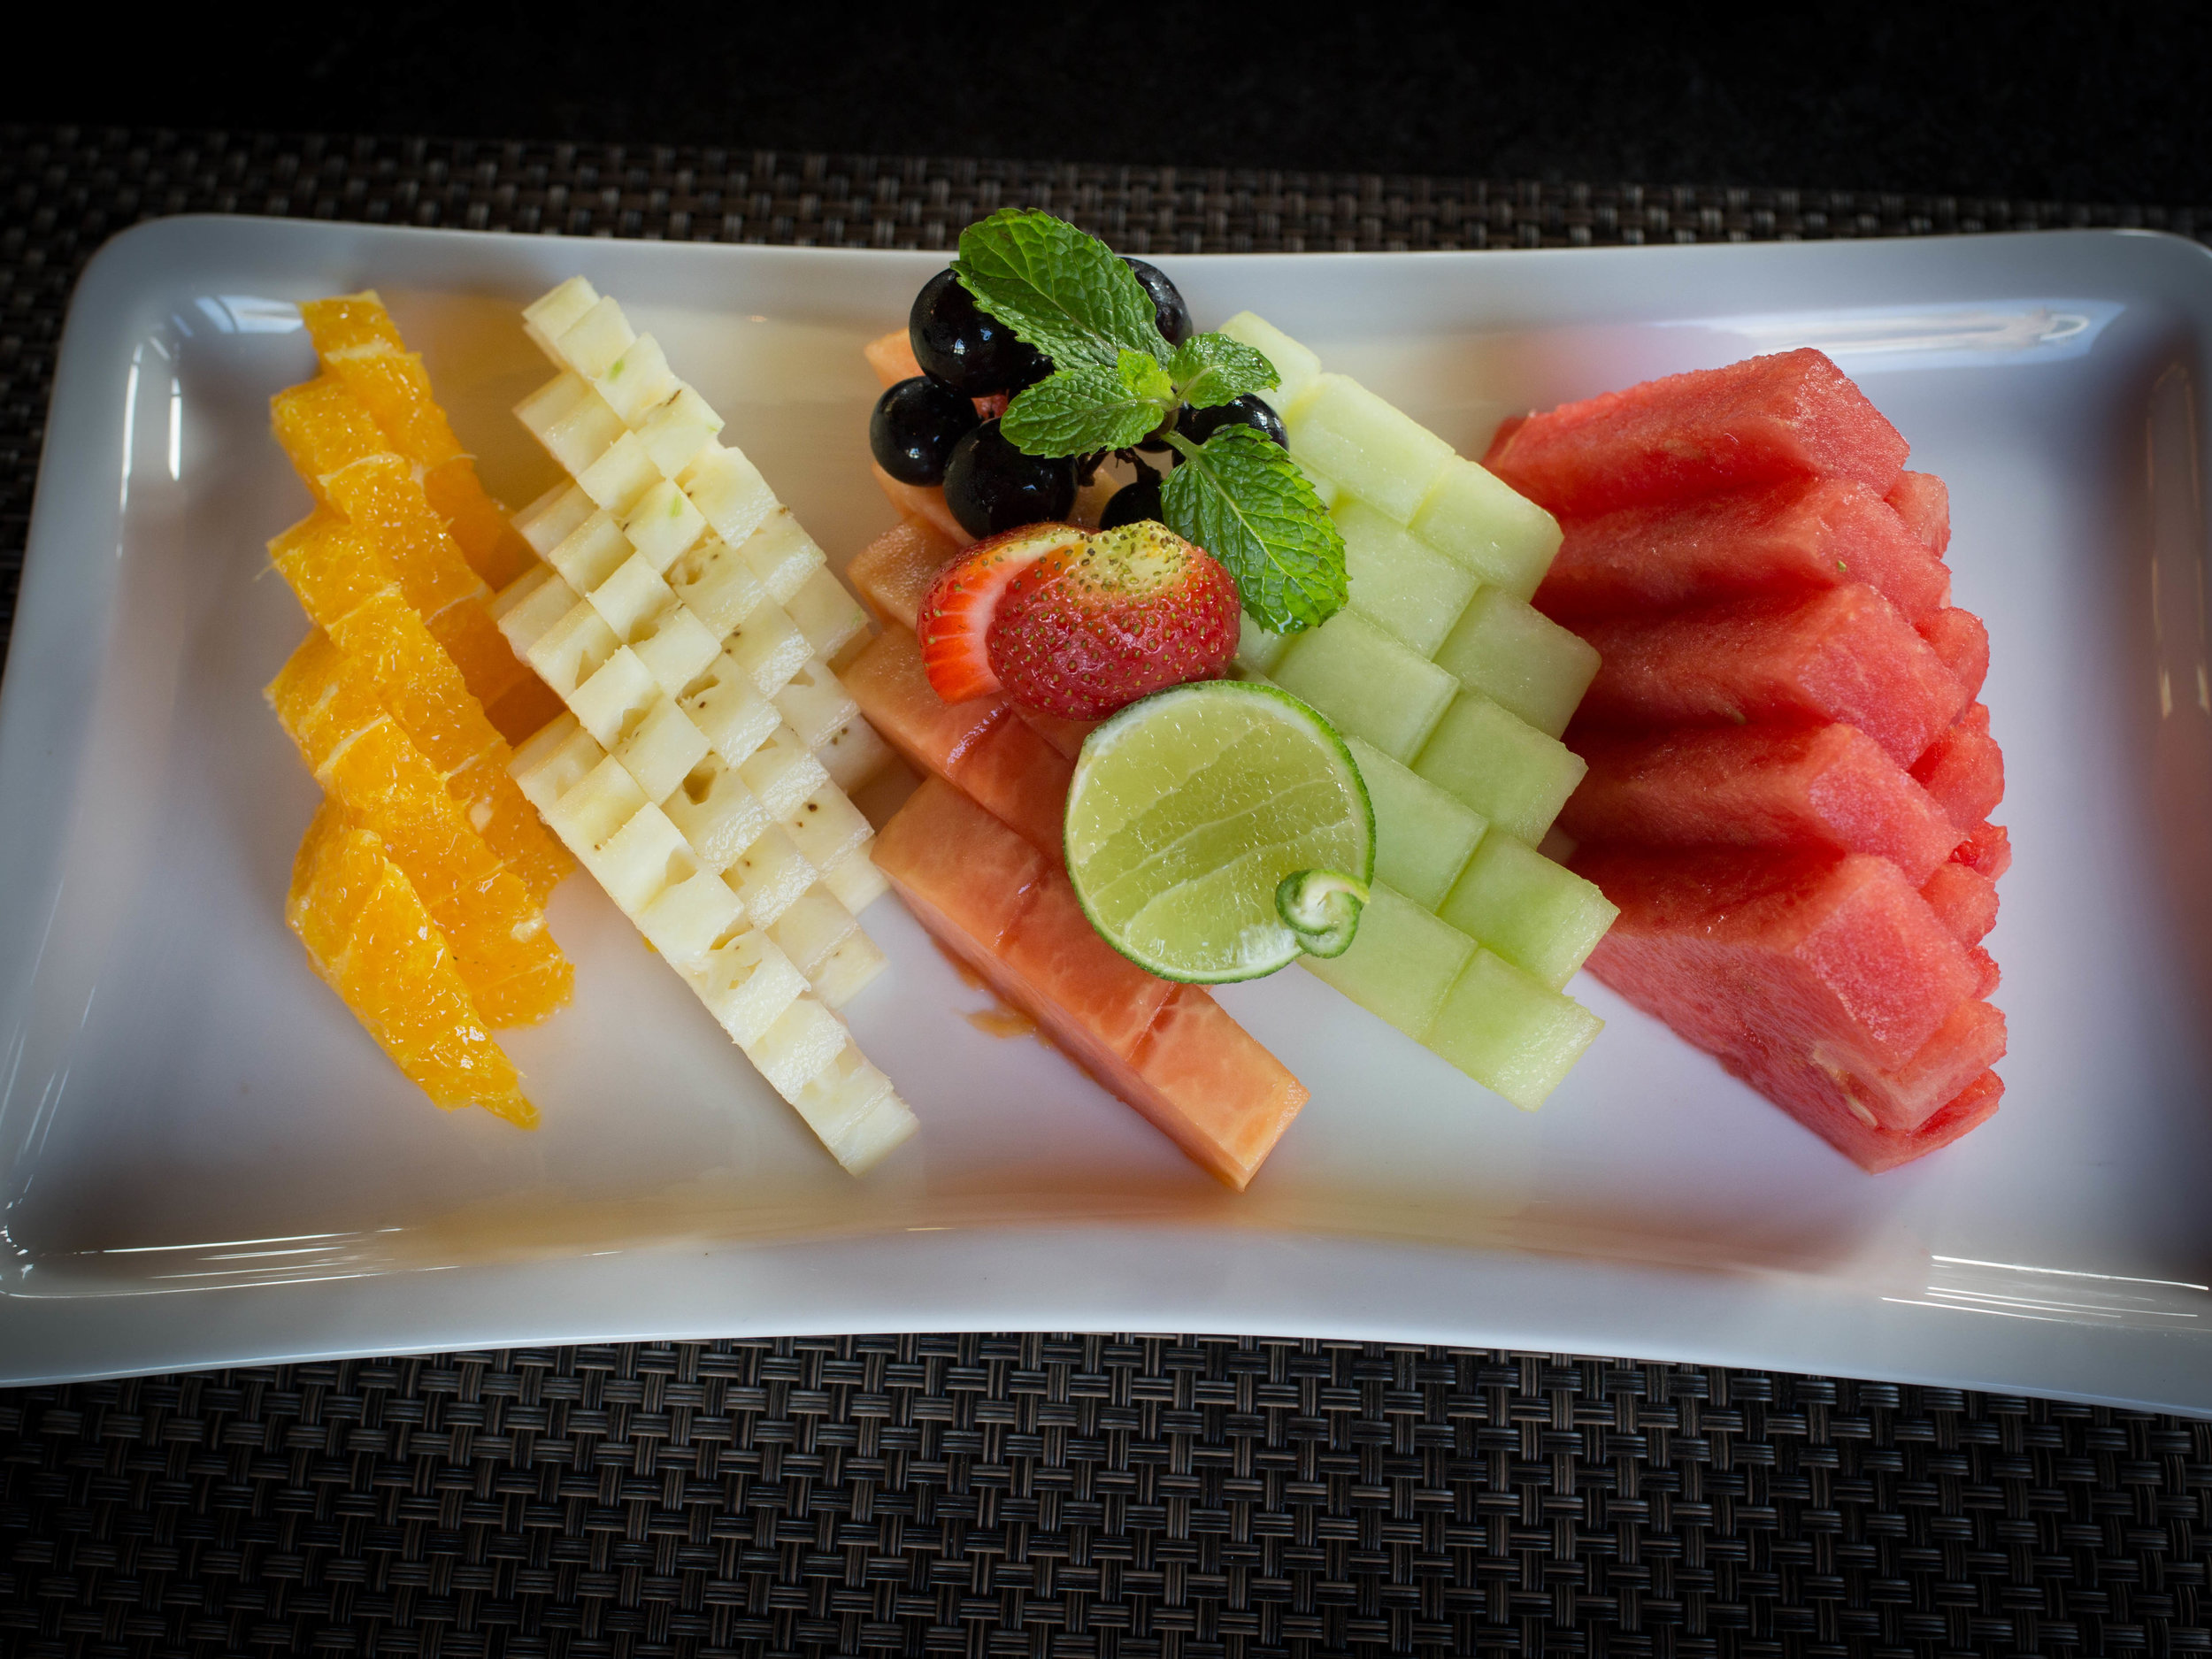 Fruit plate Mantra (1 of 1).jpg